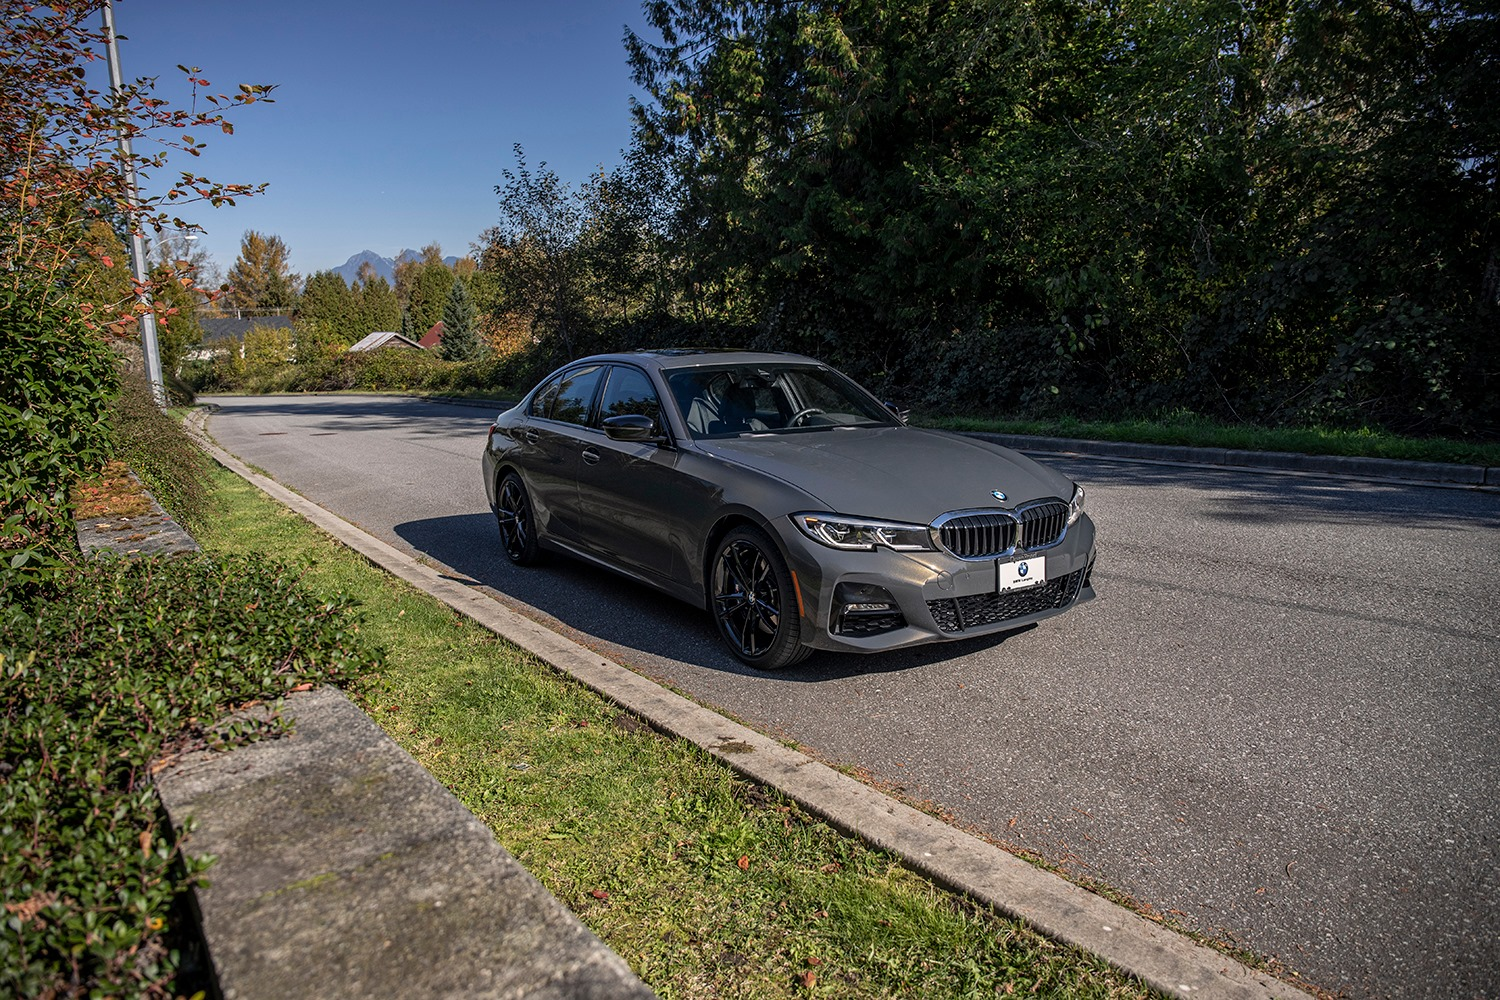 Bmw-tbs-3-series-20